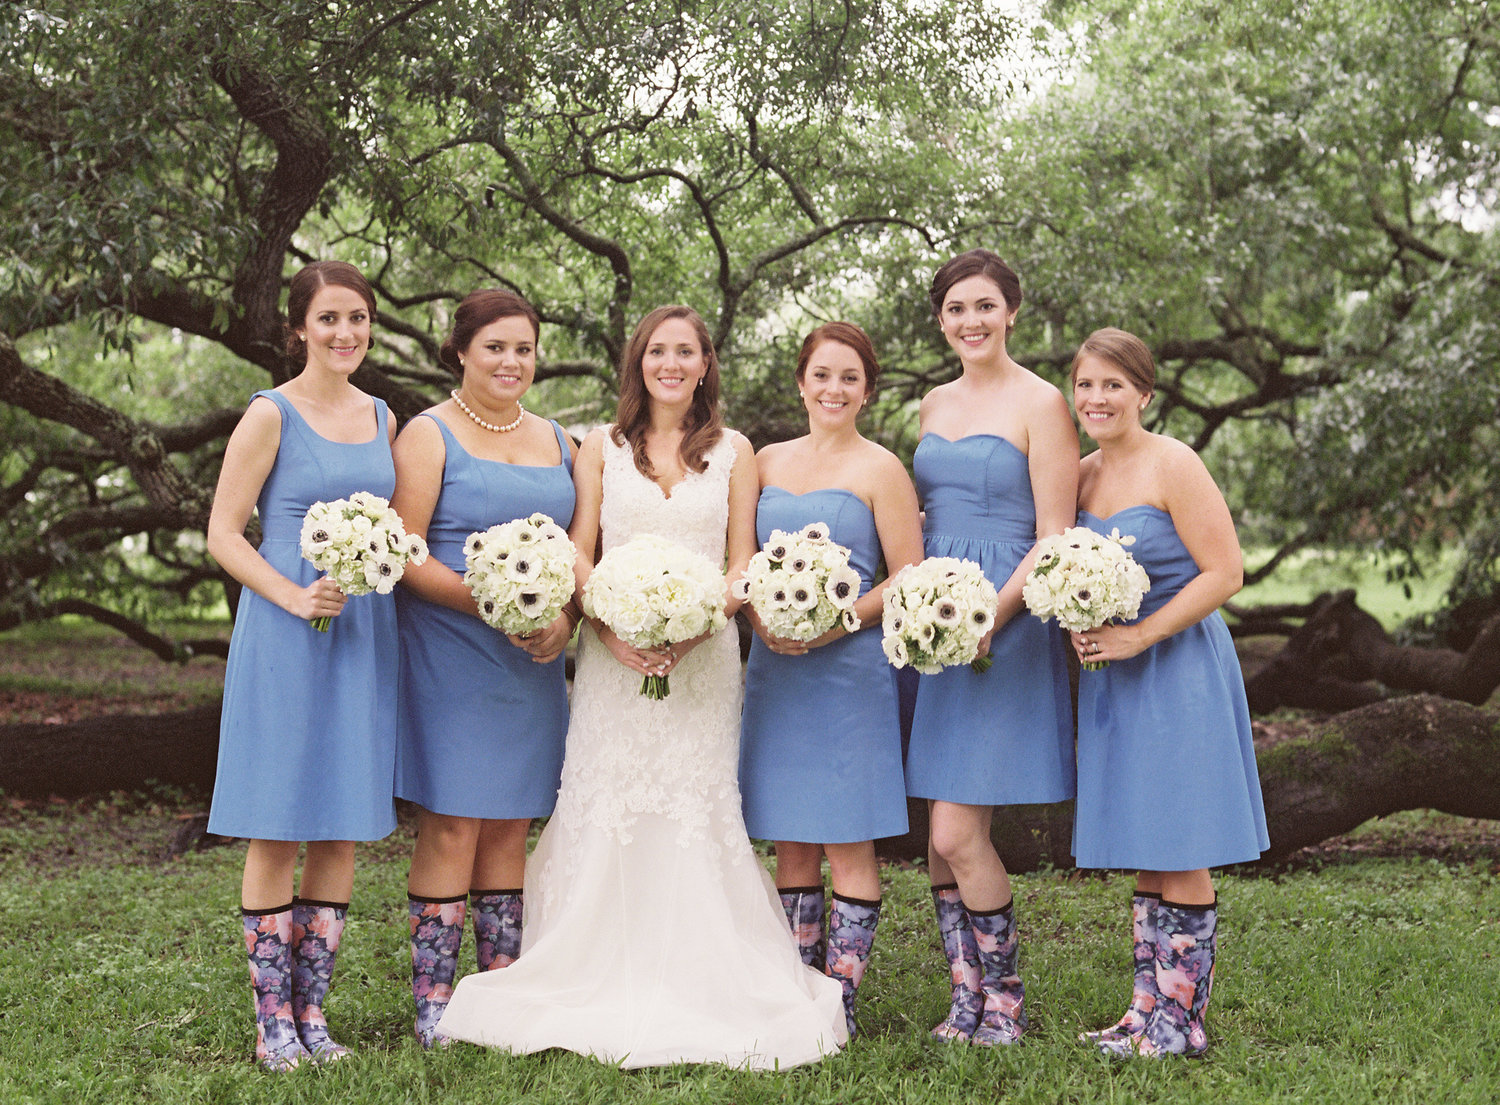 Bride and bridesmaids smiling with their rainboots on in front of oak trees and white bouquets